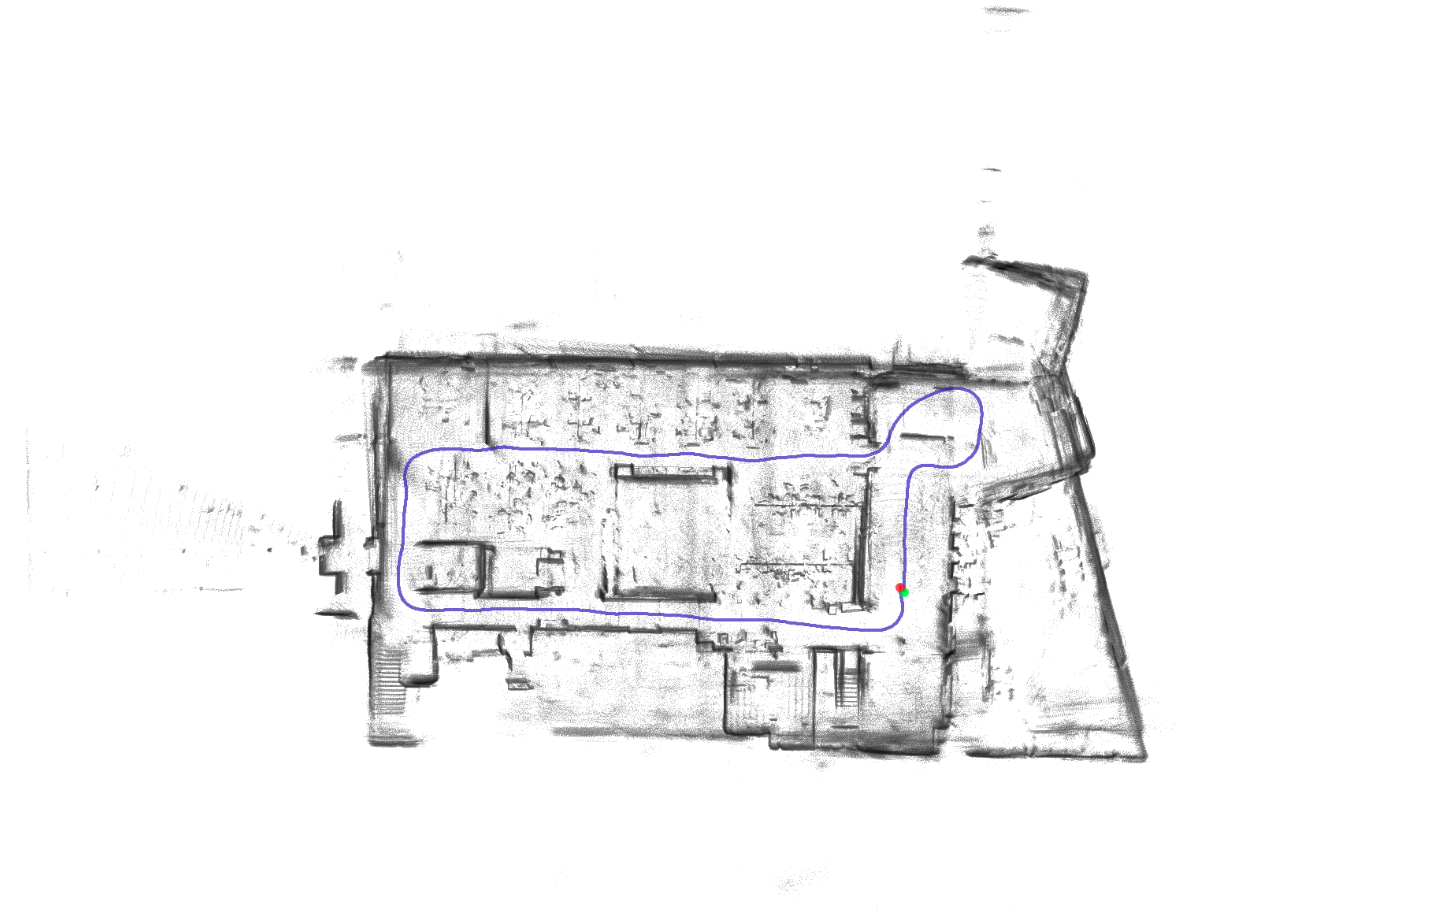 Cartographer Xray Image from OS1-64